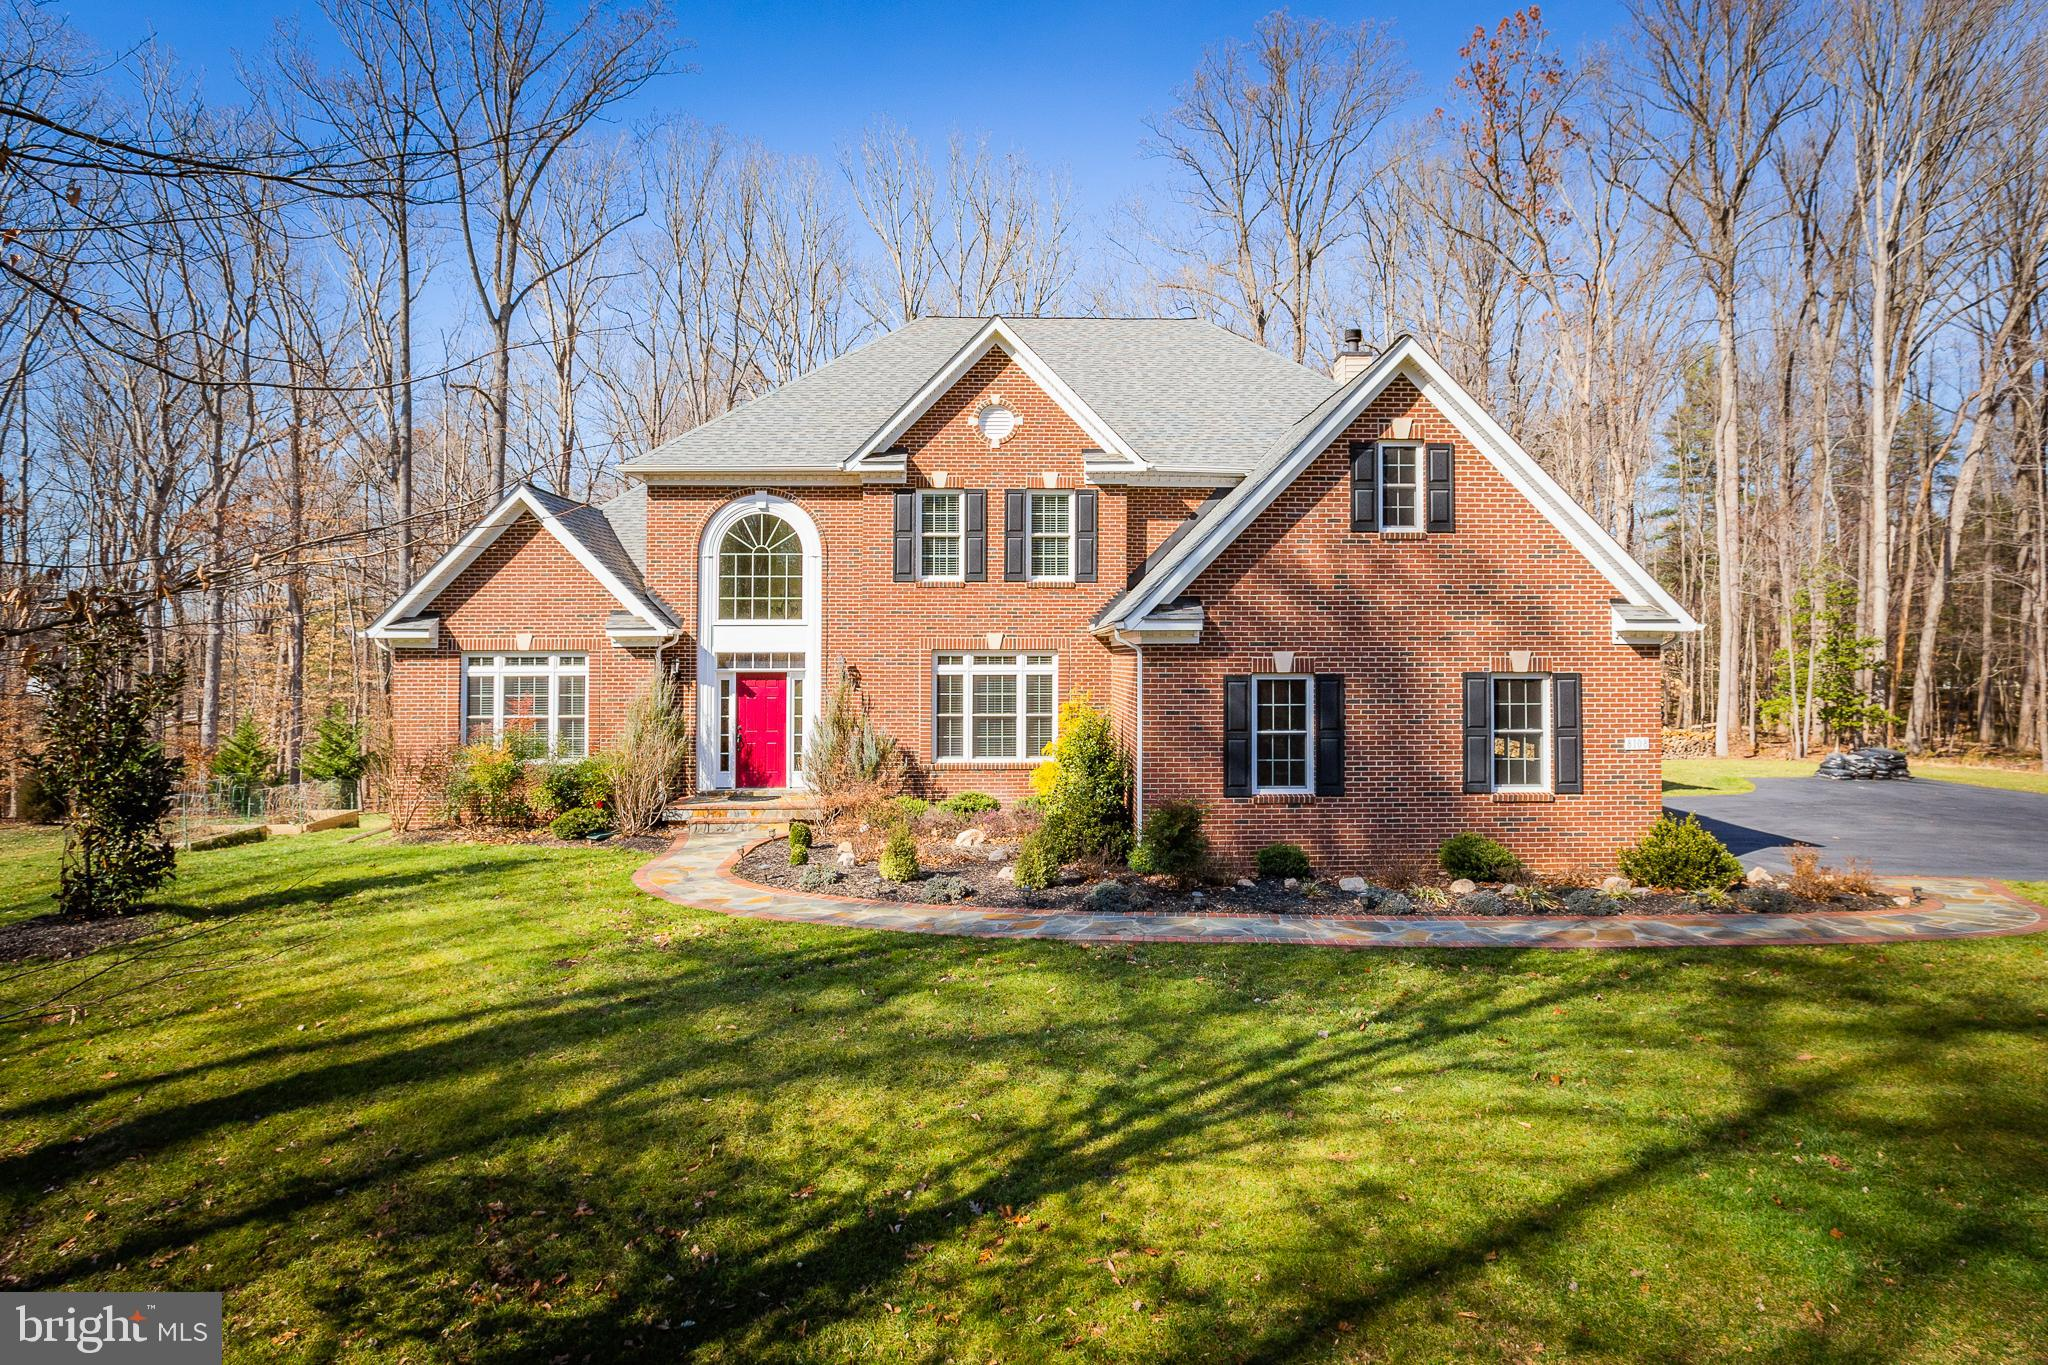 8108 SPRUCE VALLEY LANE, CLIFTON, VA 20124